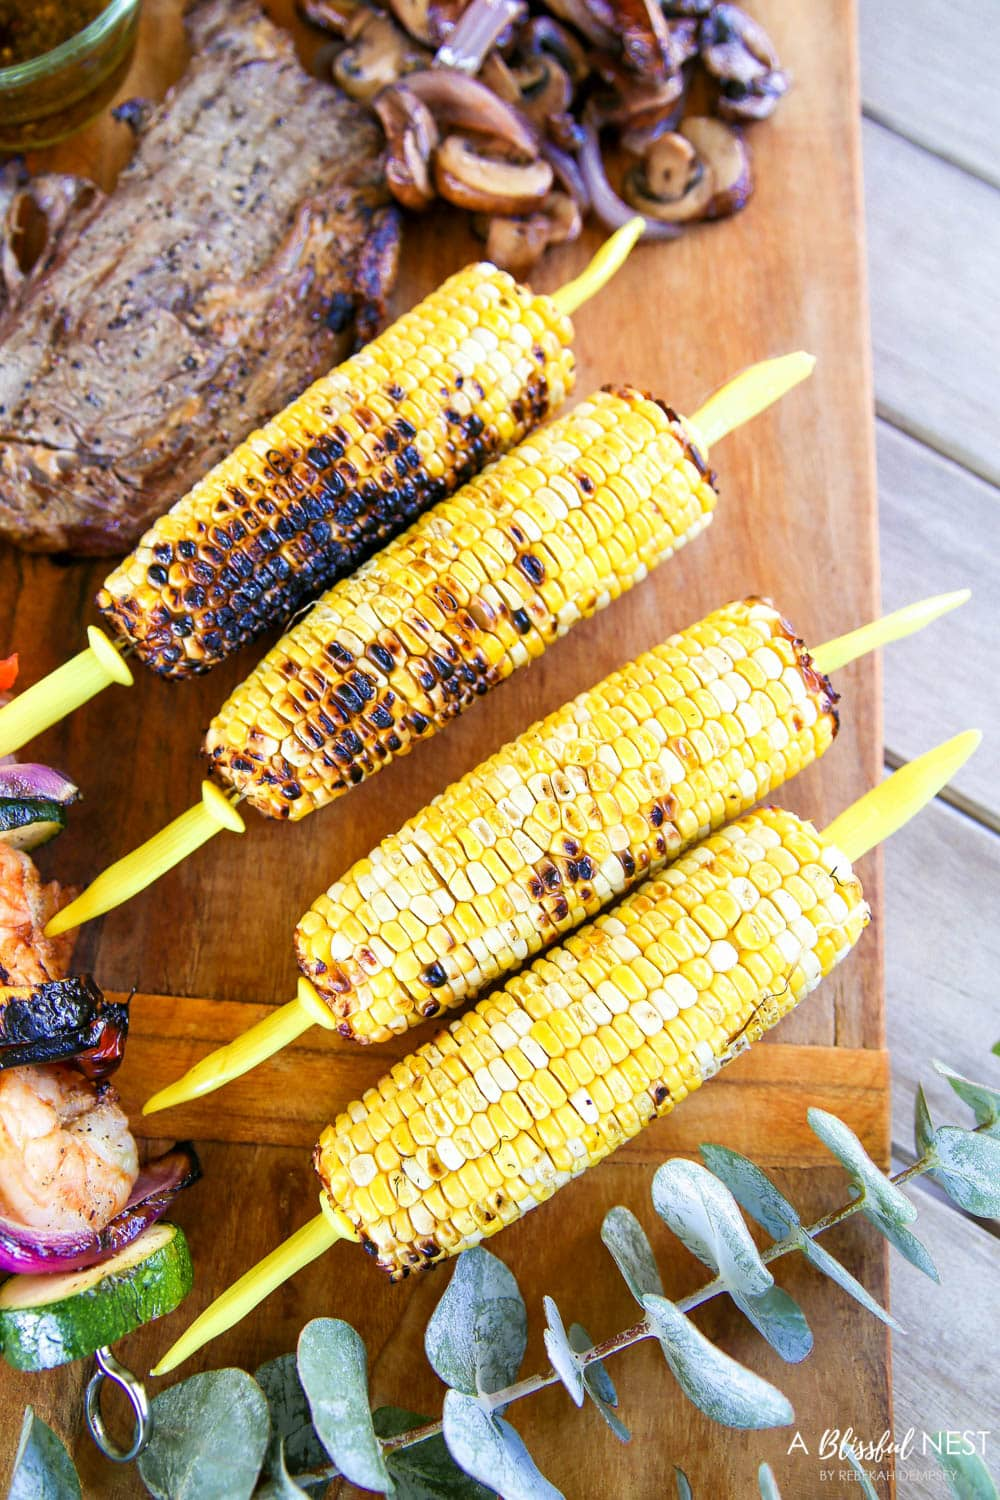 Turn your bbq and grilling recipes into a summer grilling charcuterie board! #ABlissfulNest #charcuterieboard #appetizers